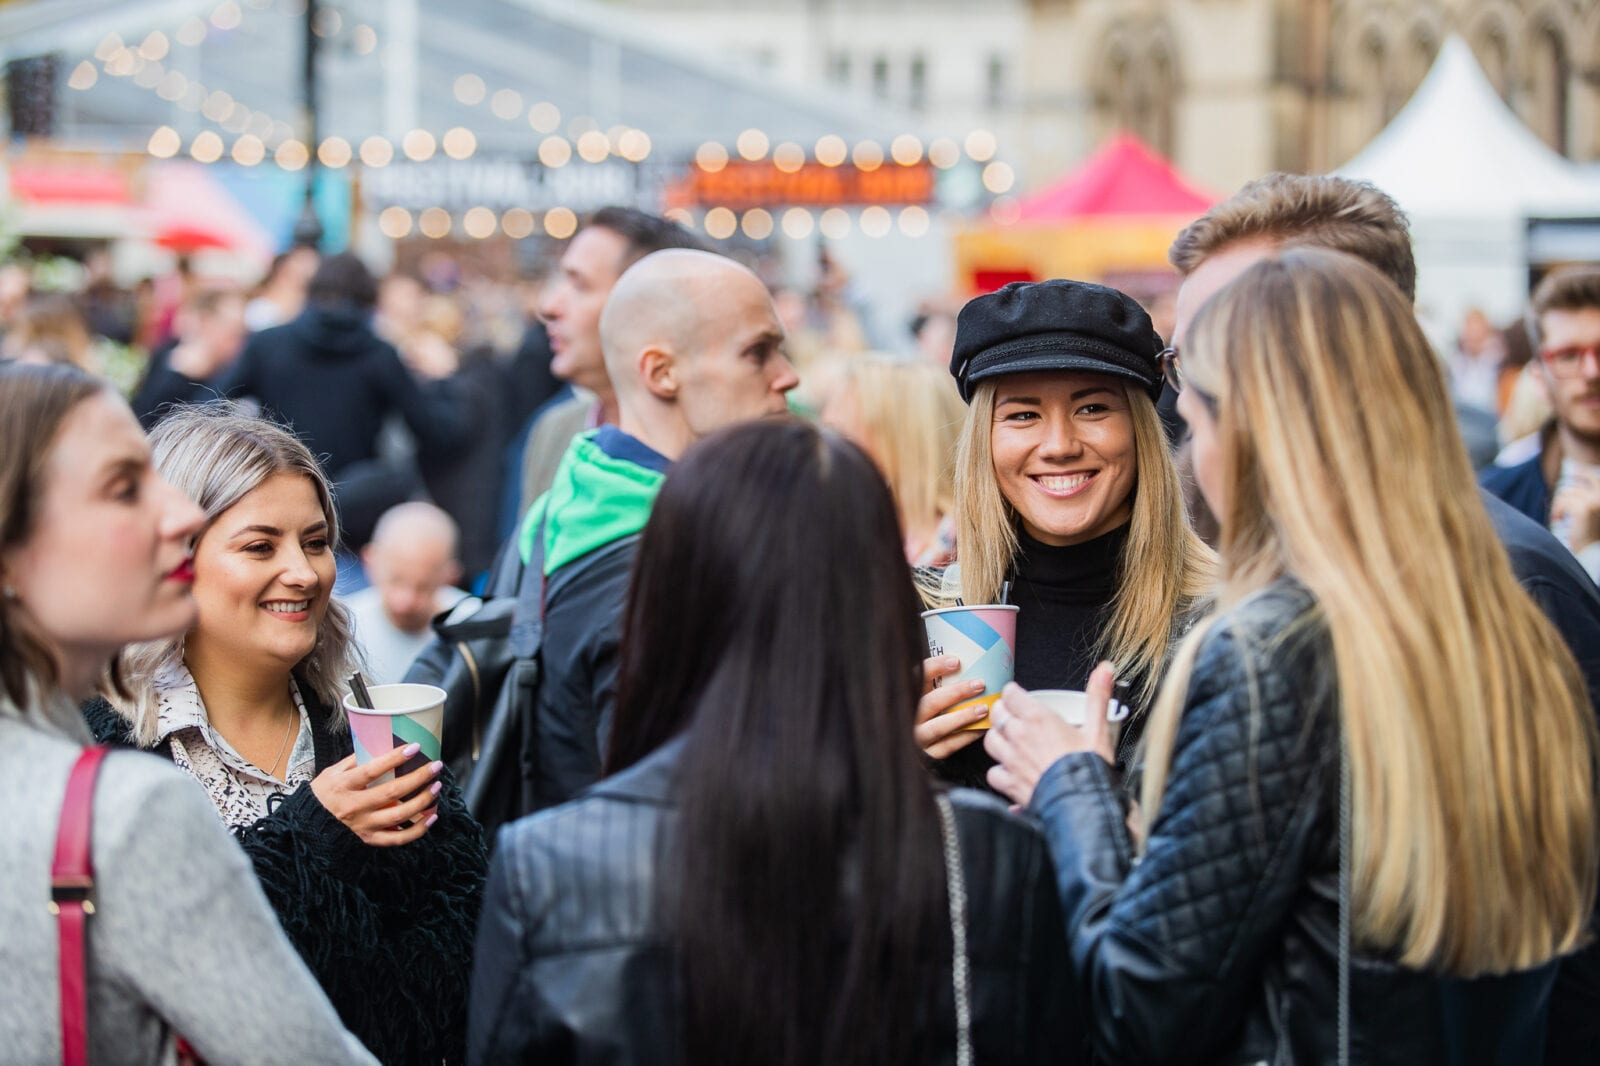 Manchester Food and Drink Festival announces dates for its 2021 return, The Manc